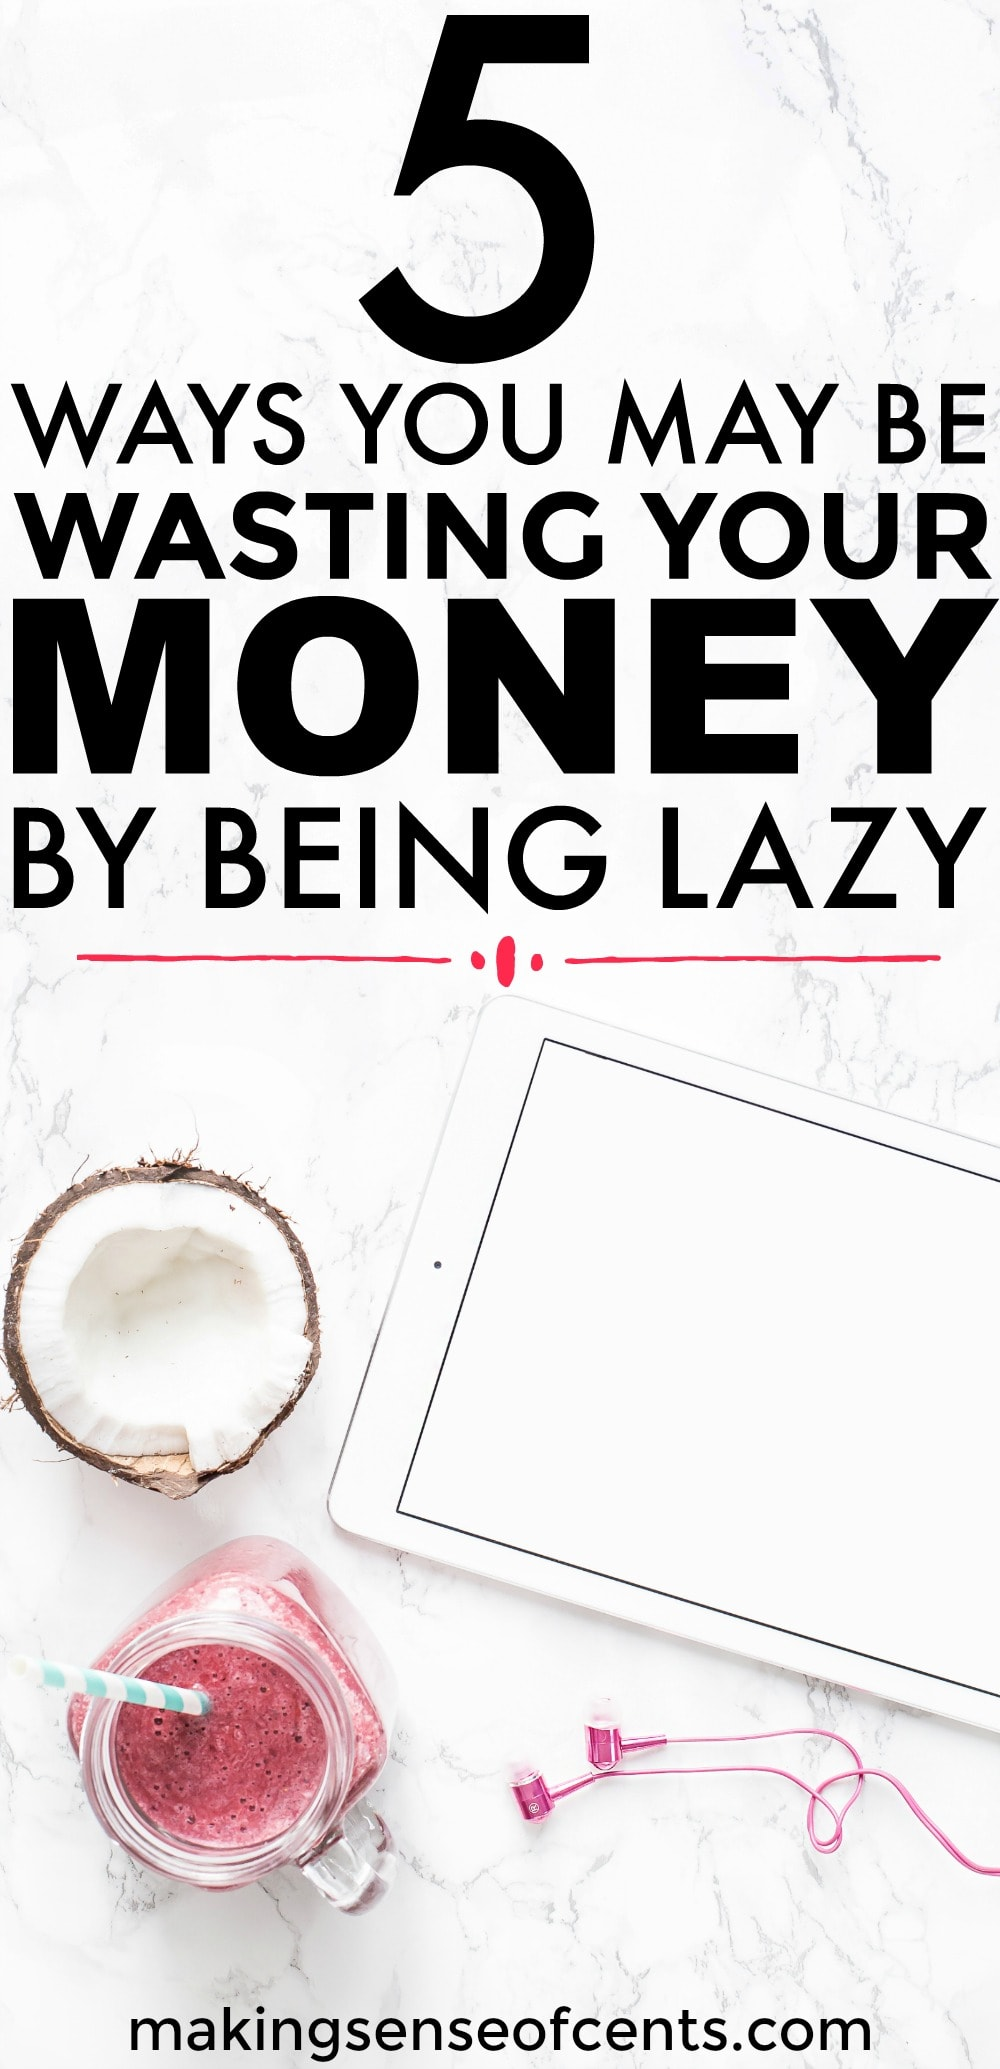 Check out this list of 5 ways you may be wasting your money by being lazy. This is a great list!